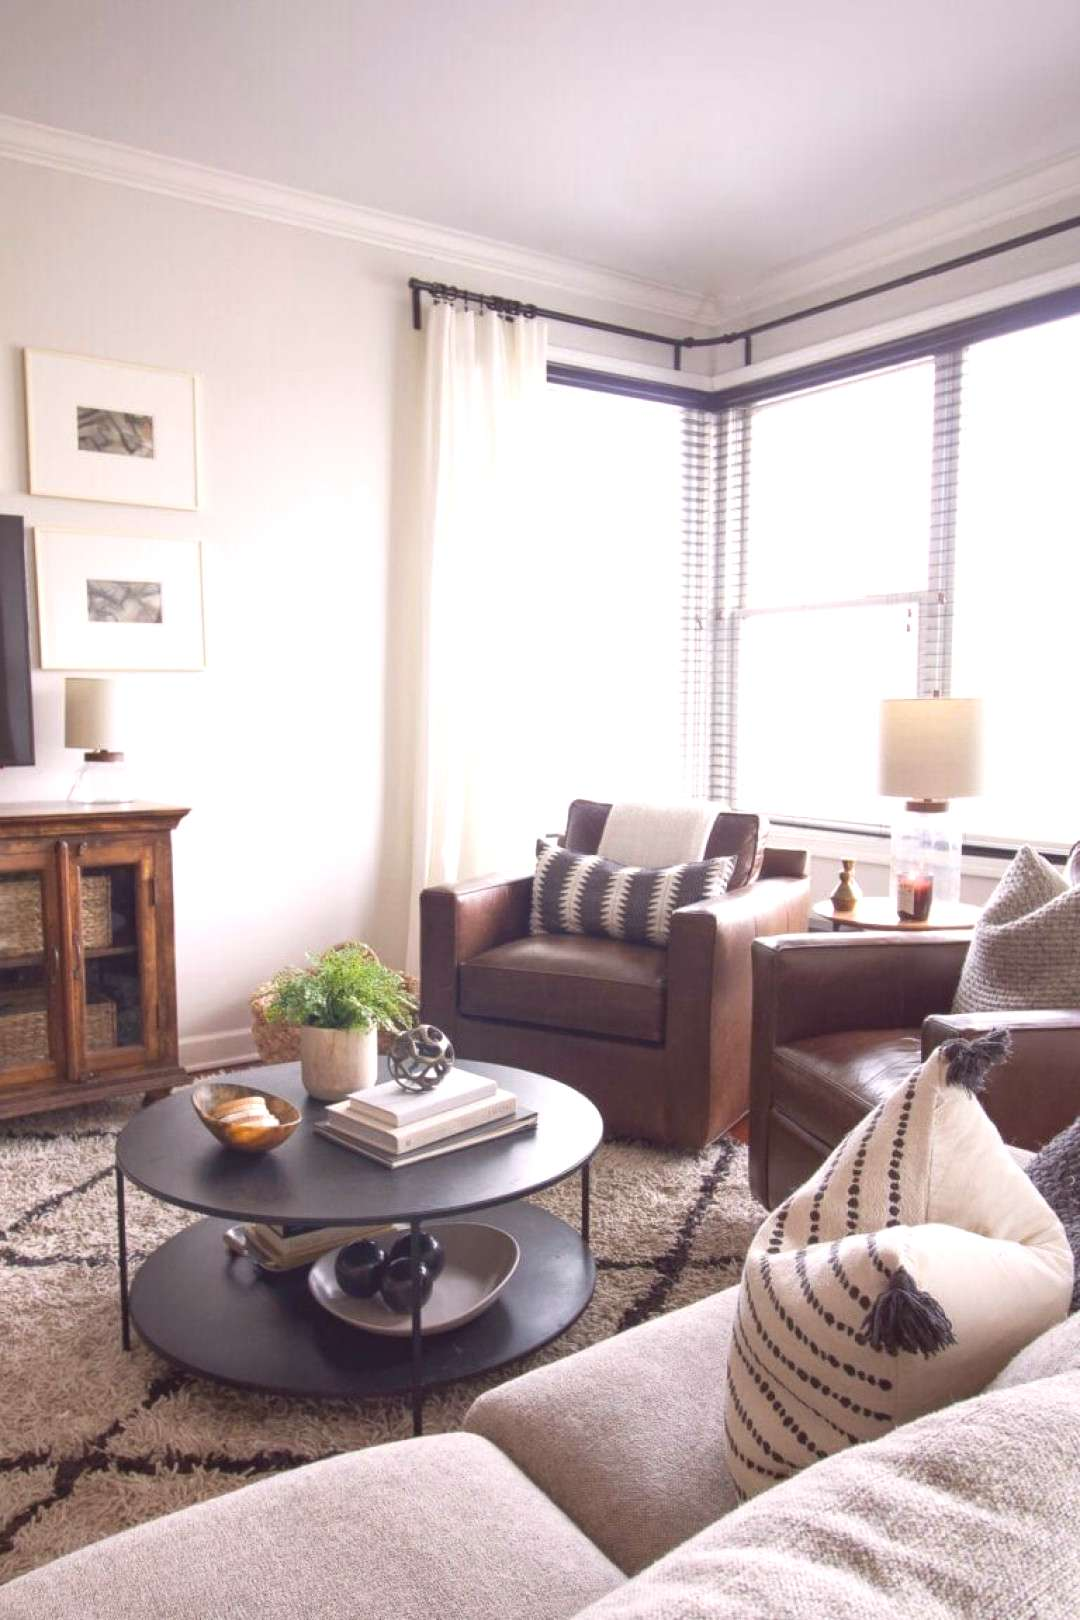 Curtains and leather chairs in the living room. Come take a look at this family-friendly home tour.